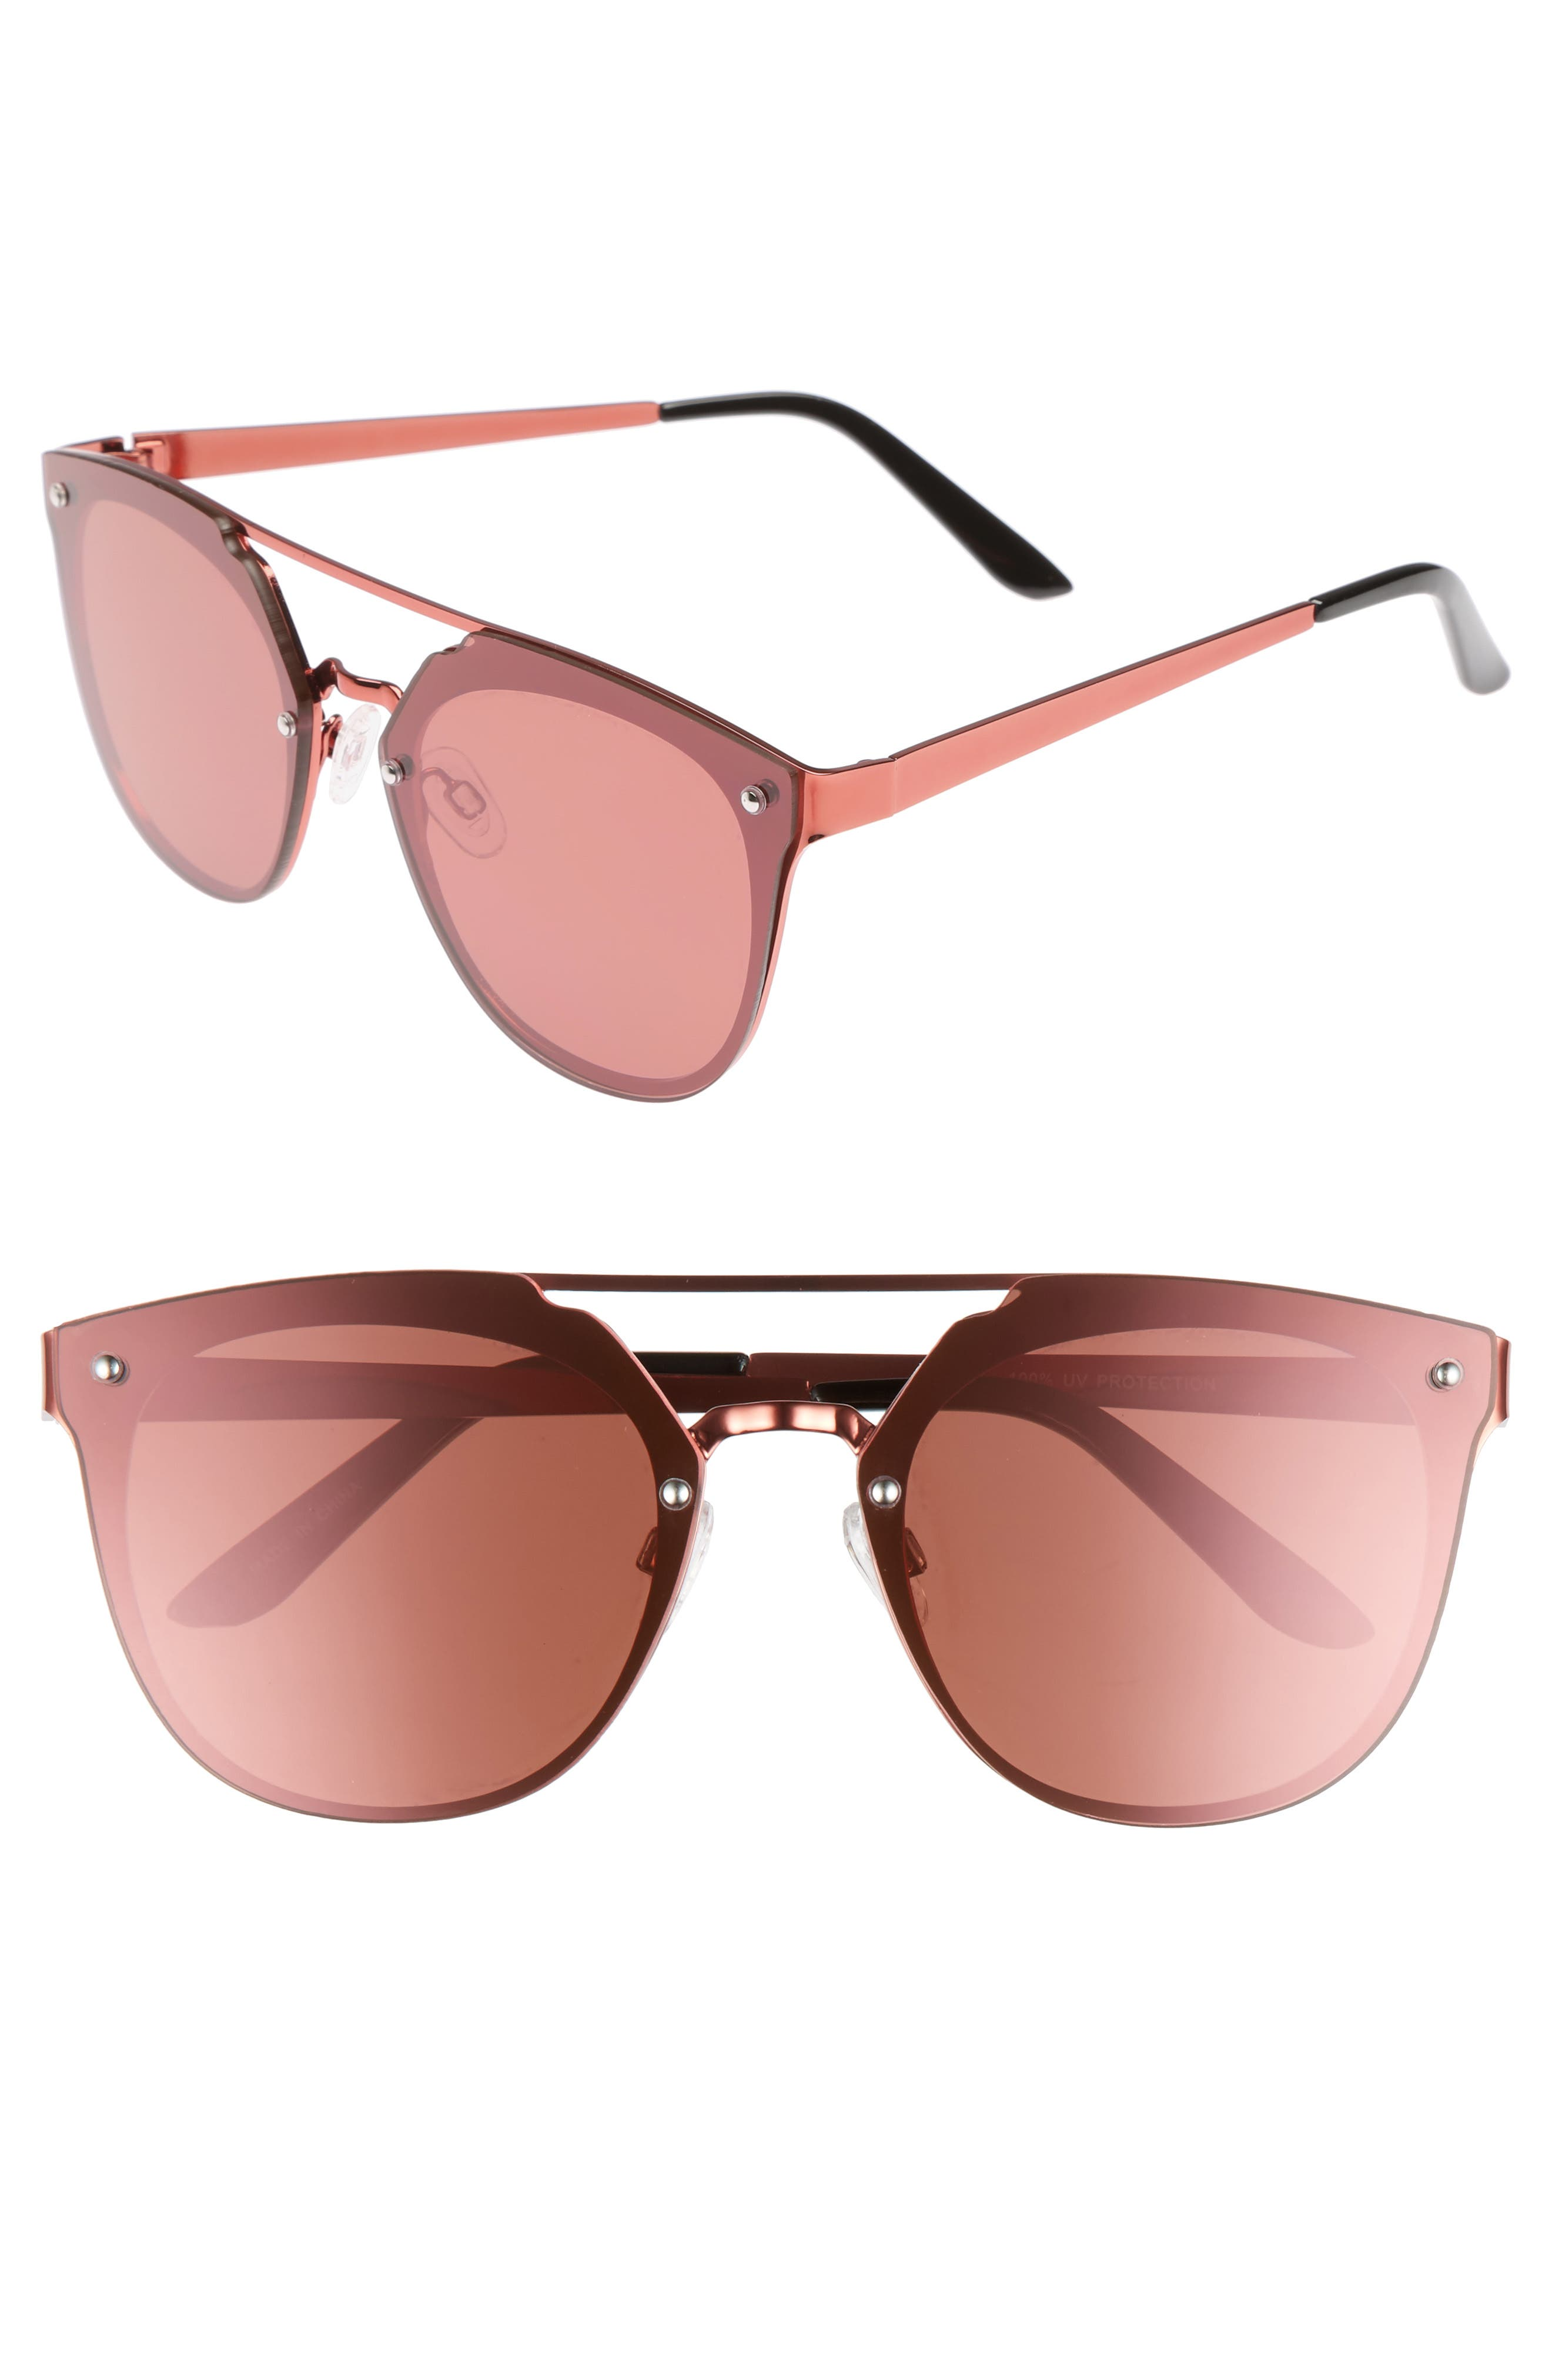 Mirrored Aviator Sunglasses,                         Main,                         color, Pink/ Pink